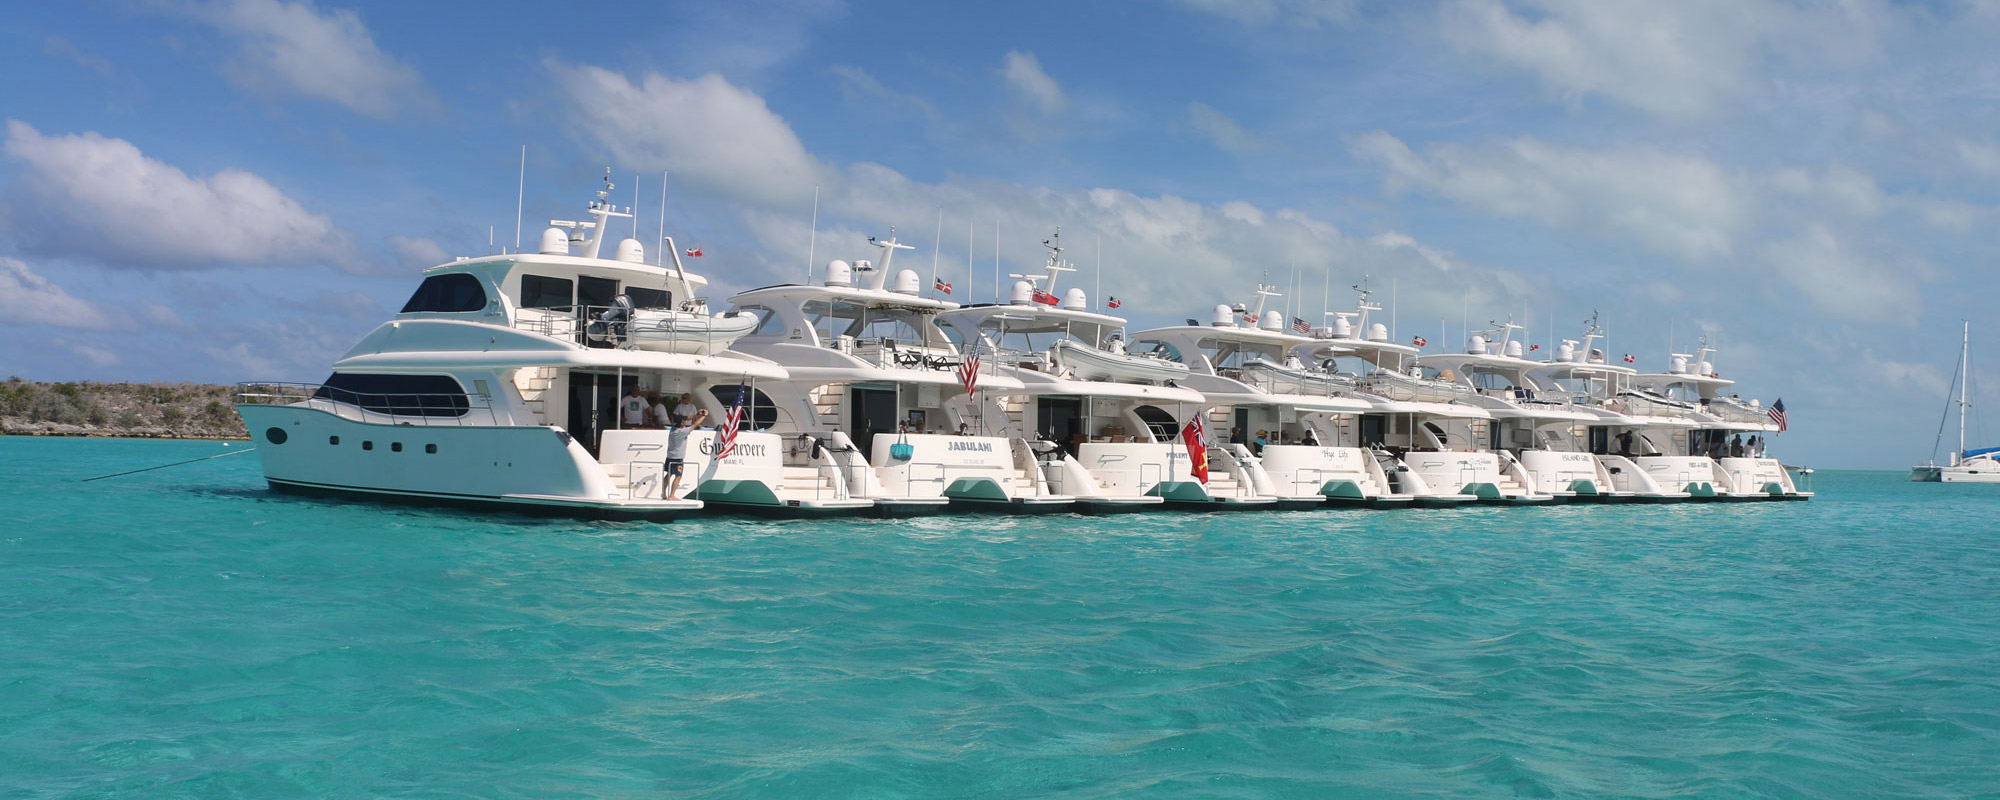 Richleigh Yachts Offering a Personal, Professional Yachting Experience